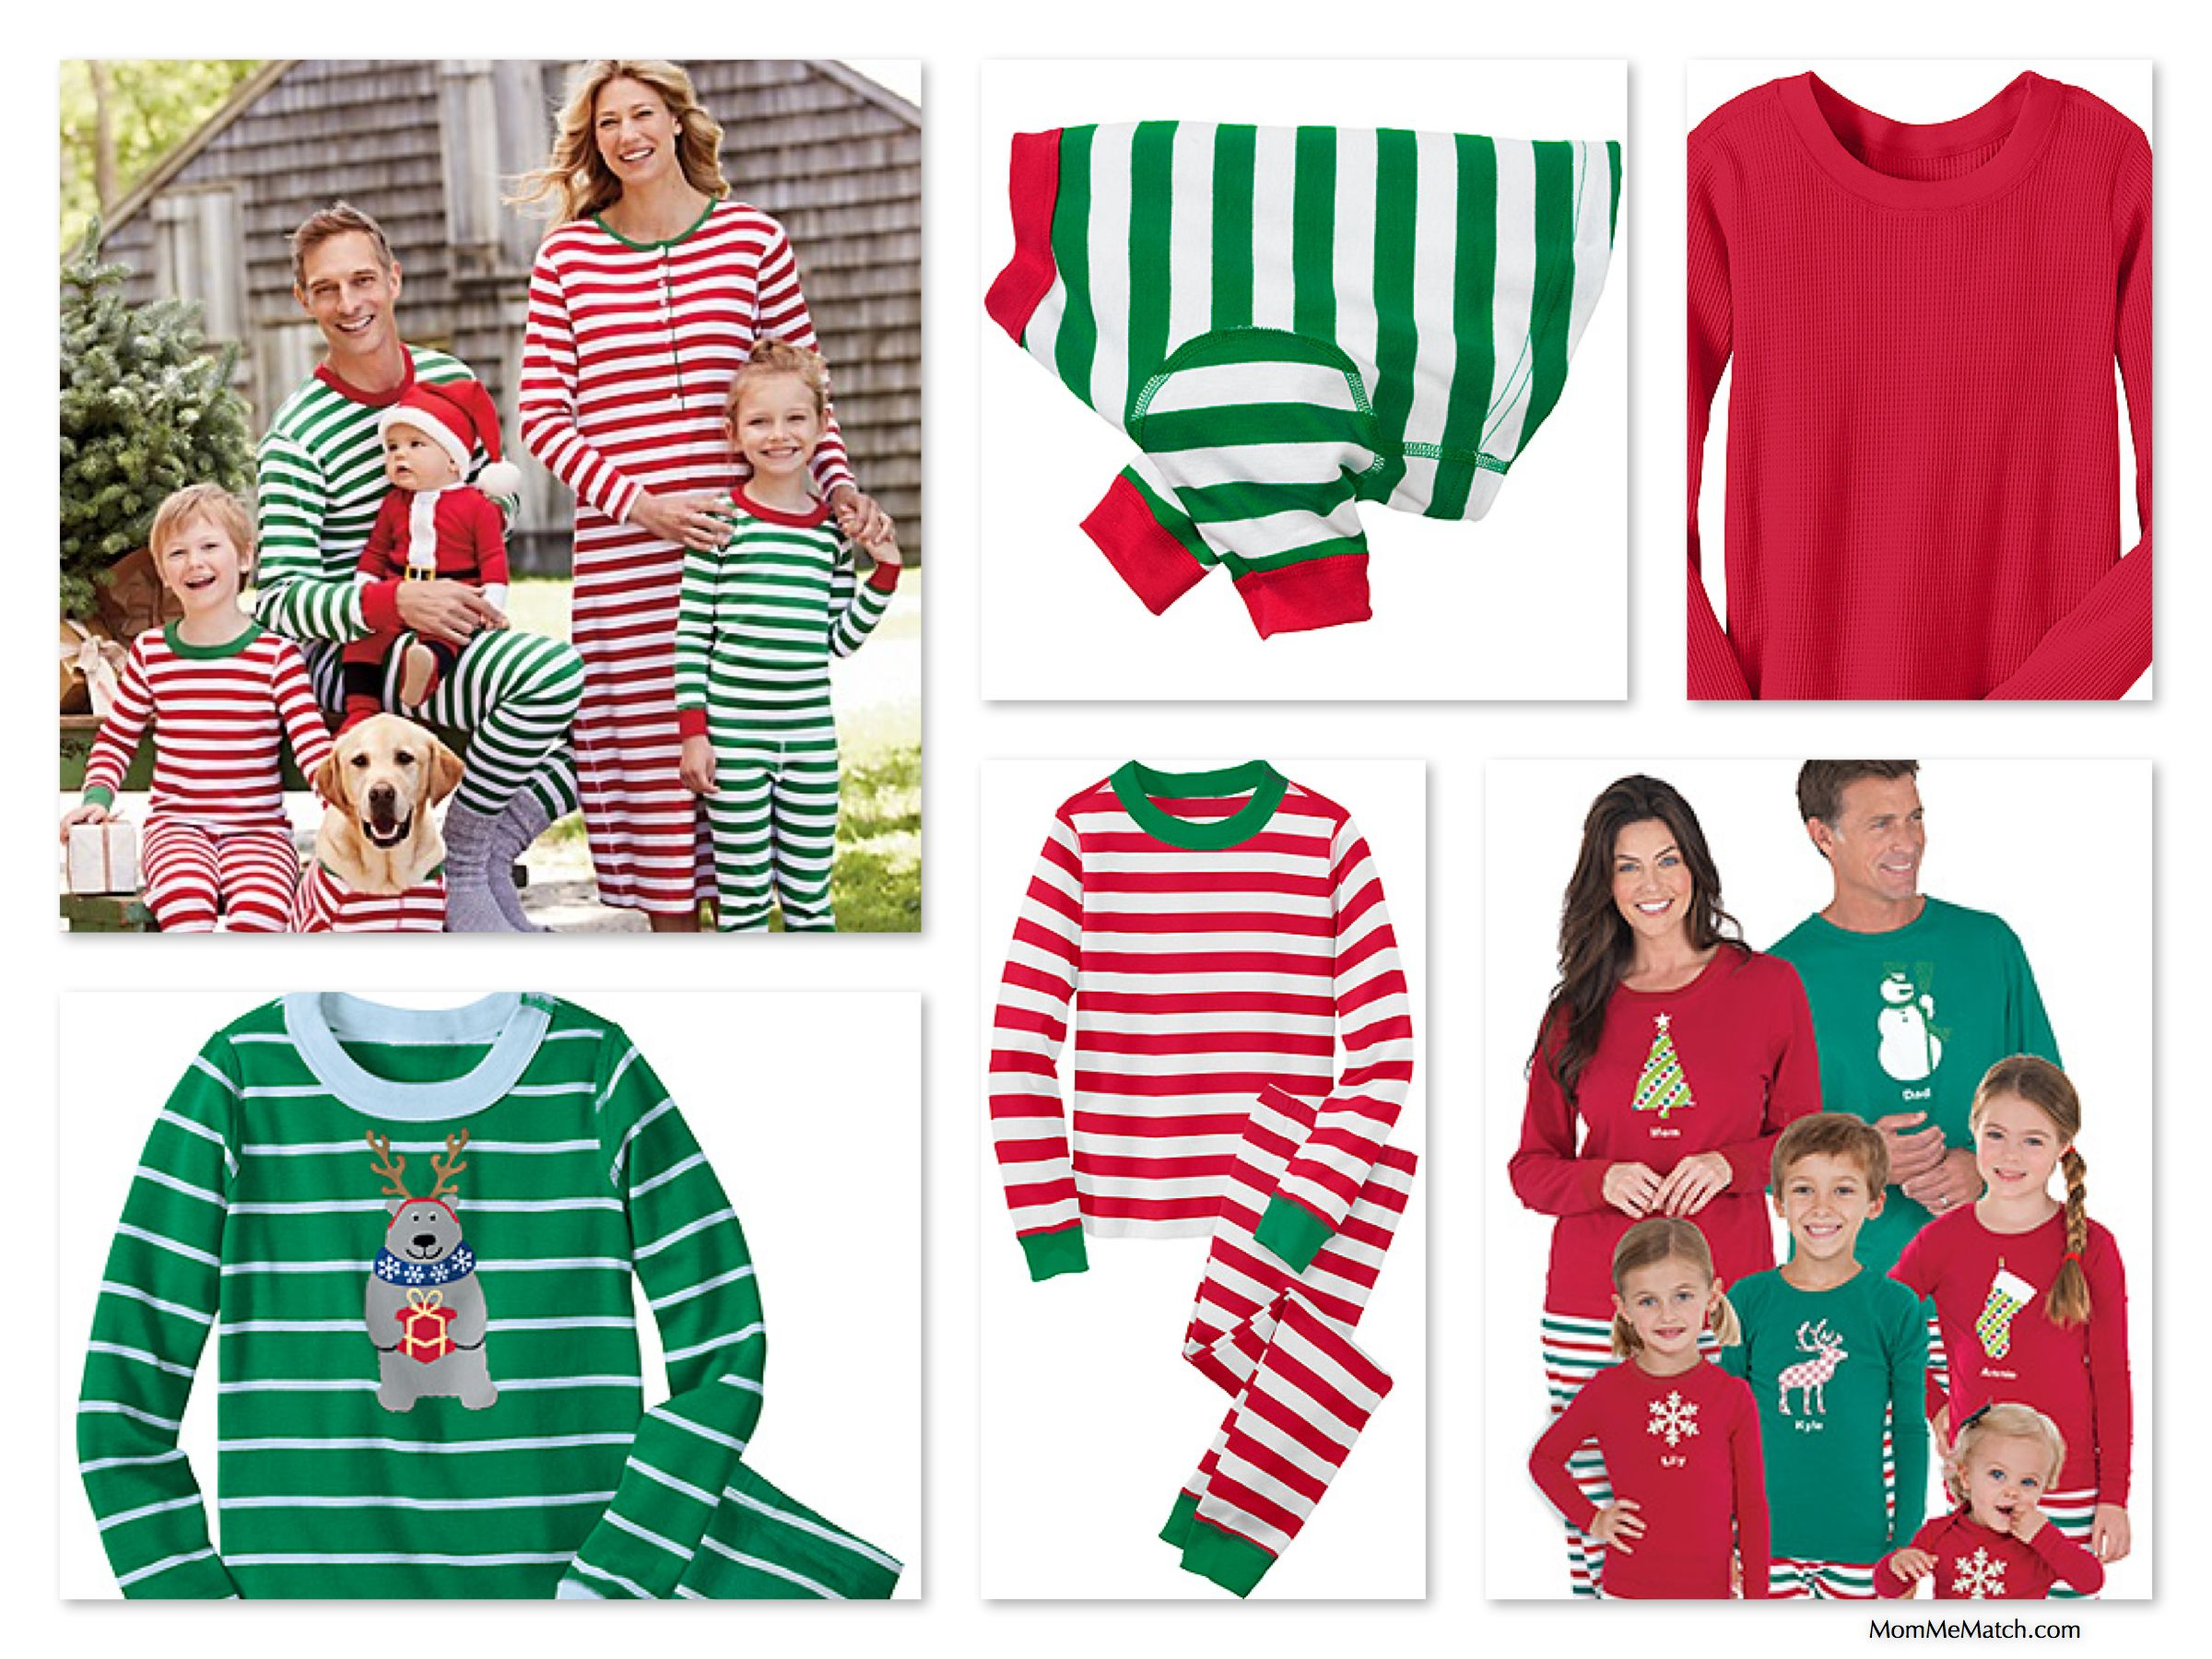 Red & Green Striped Family Christmas Pajamas like those featured ...